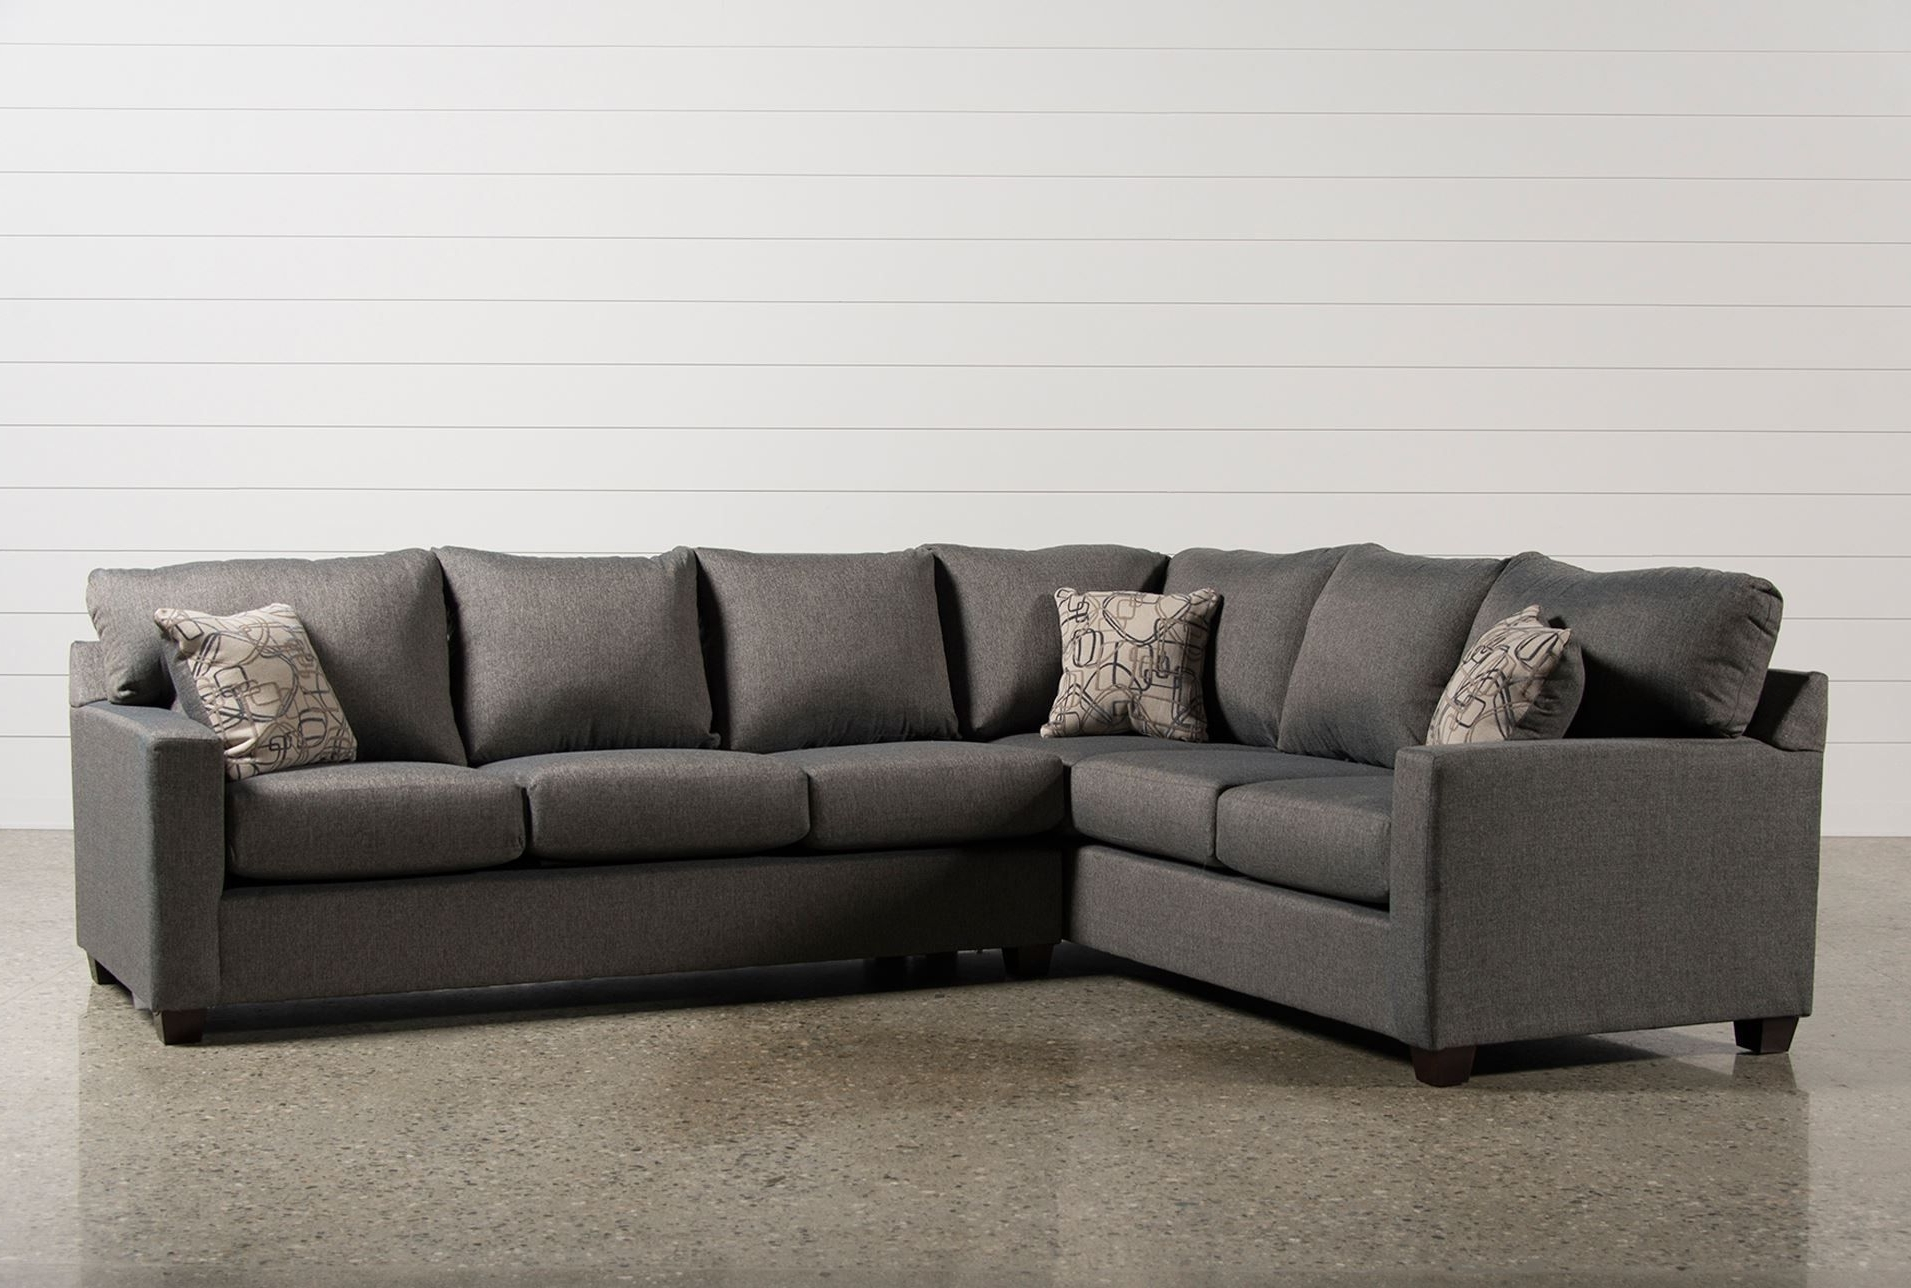 Projects To Throughout Well Known Living Spaces Sectional Sofas (View 15 of 15)